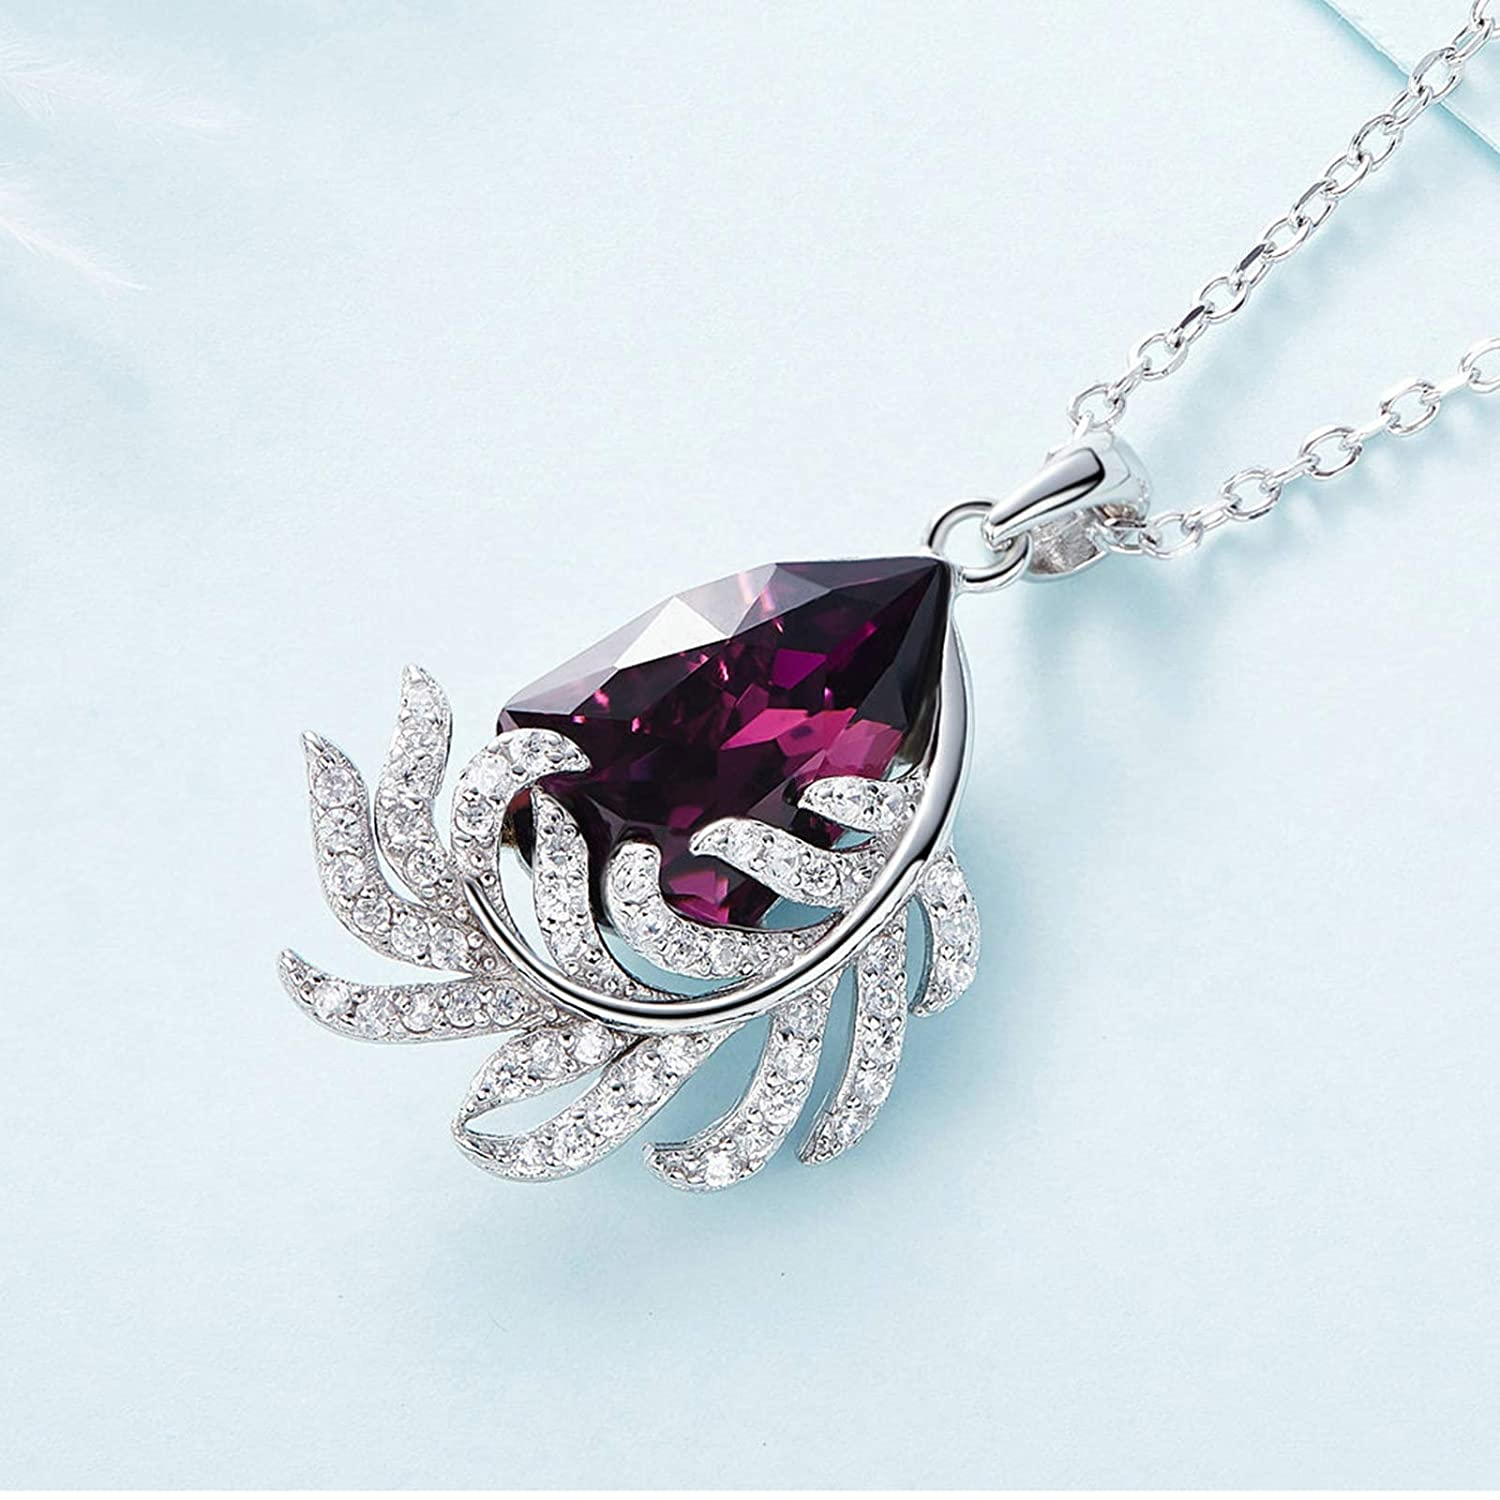 Aooaz Silver Material Necklace Womens Girls Feather Pendant Necklaces Anniversary